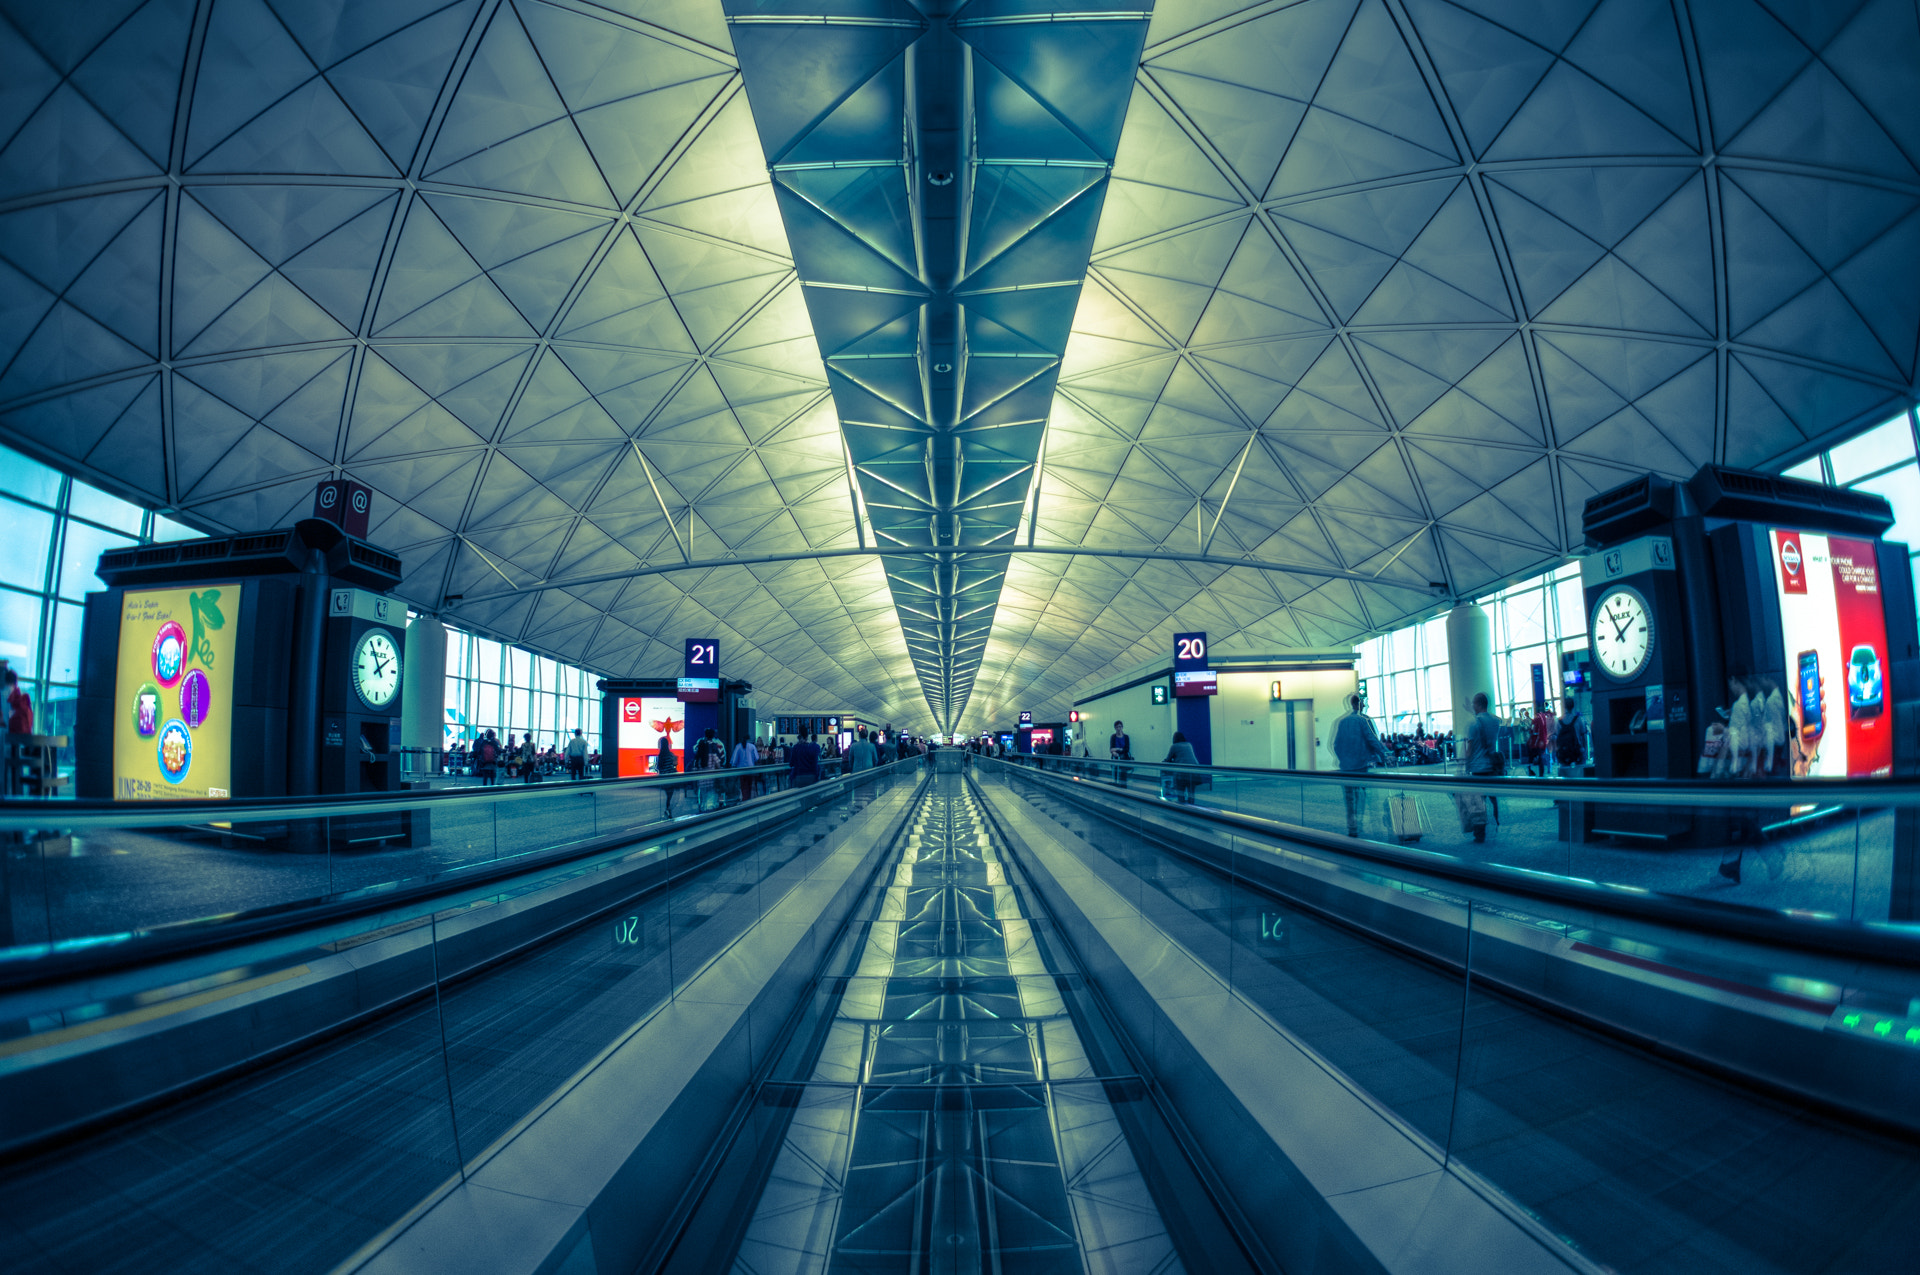 Photograph Airport by Alan Nee on 500px